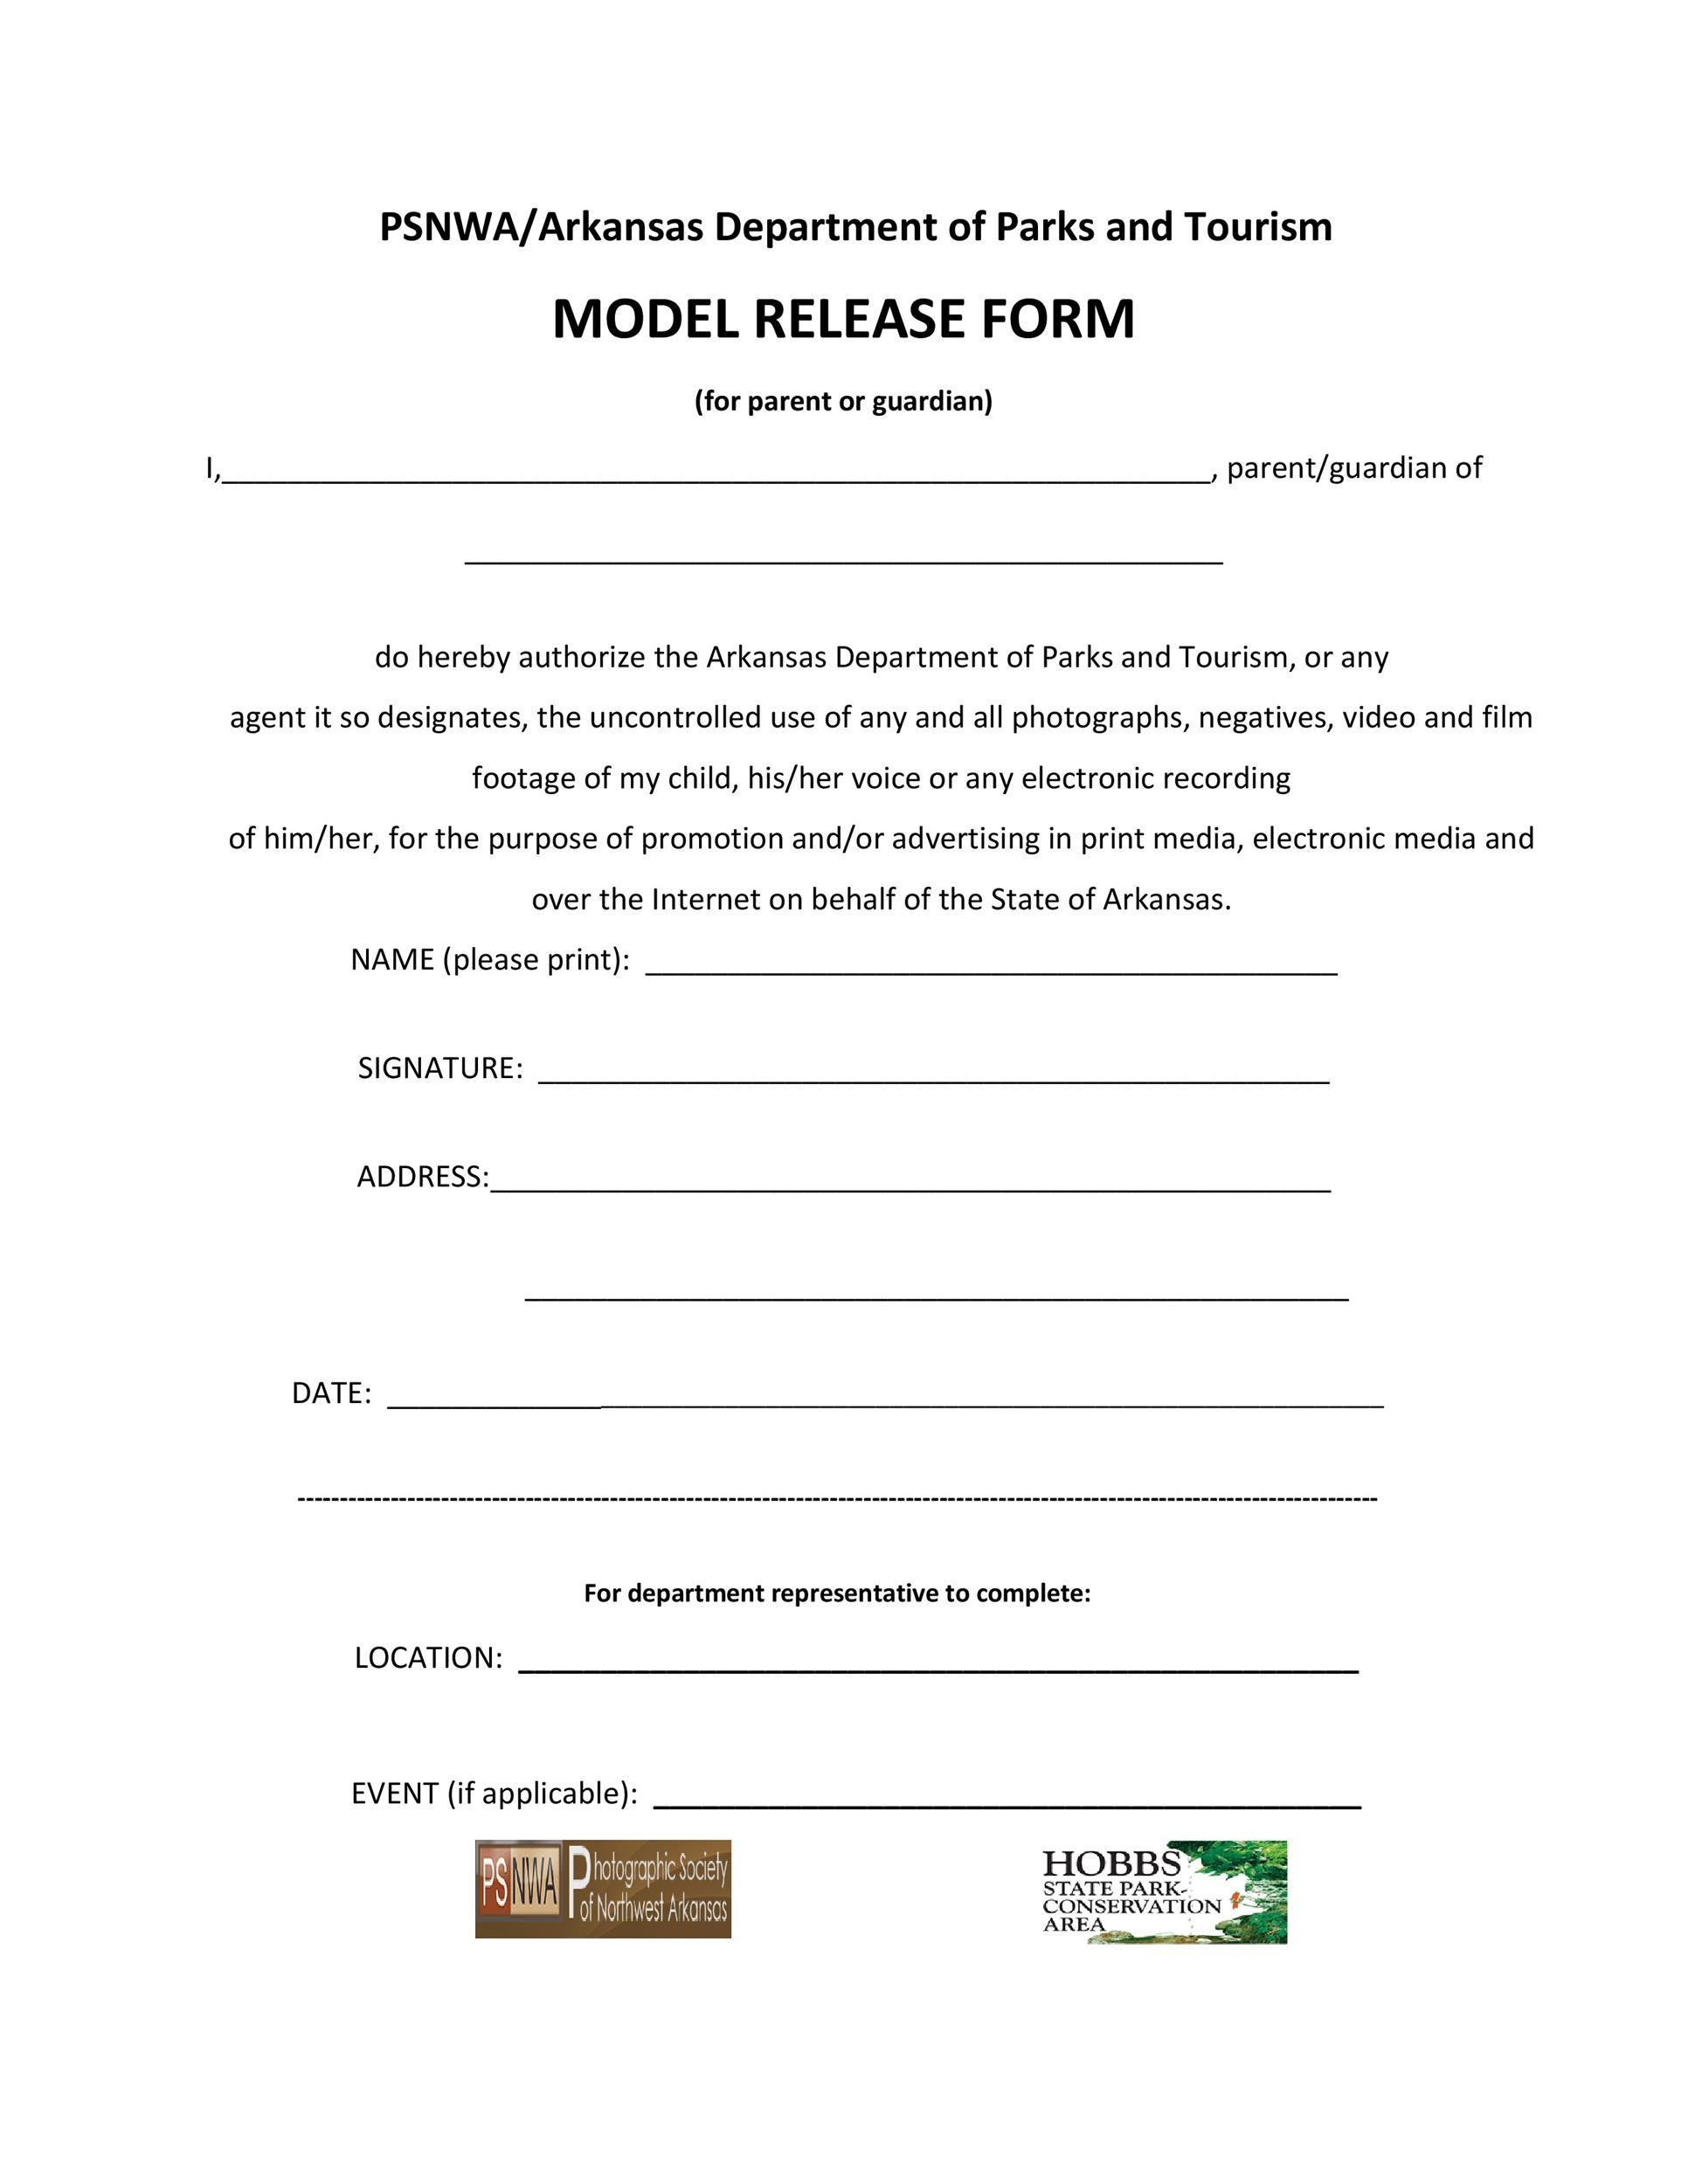 Free model release form 41